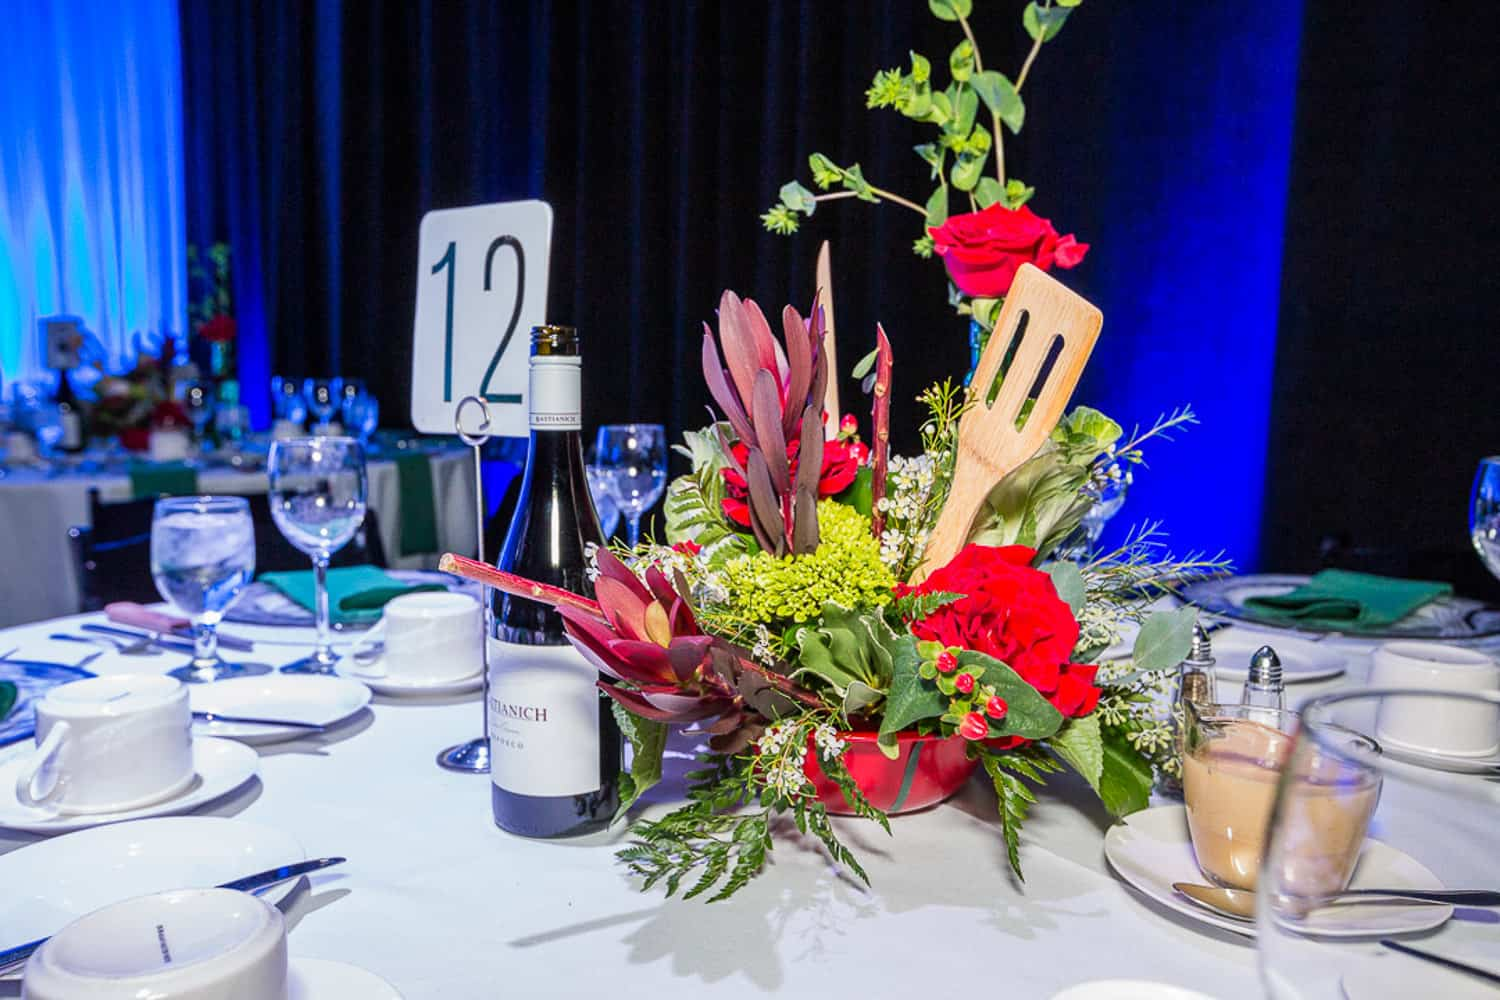 Photo of a centerpiece at a donor event at wxxi.